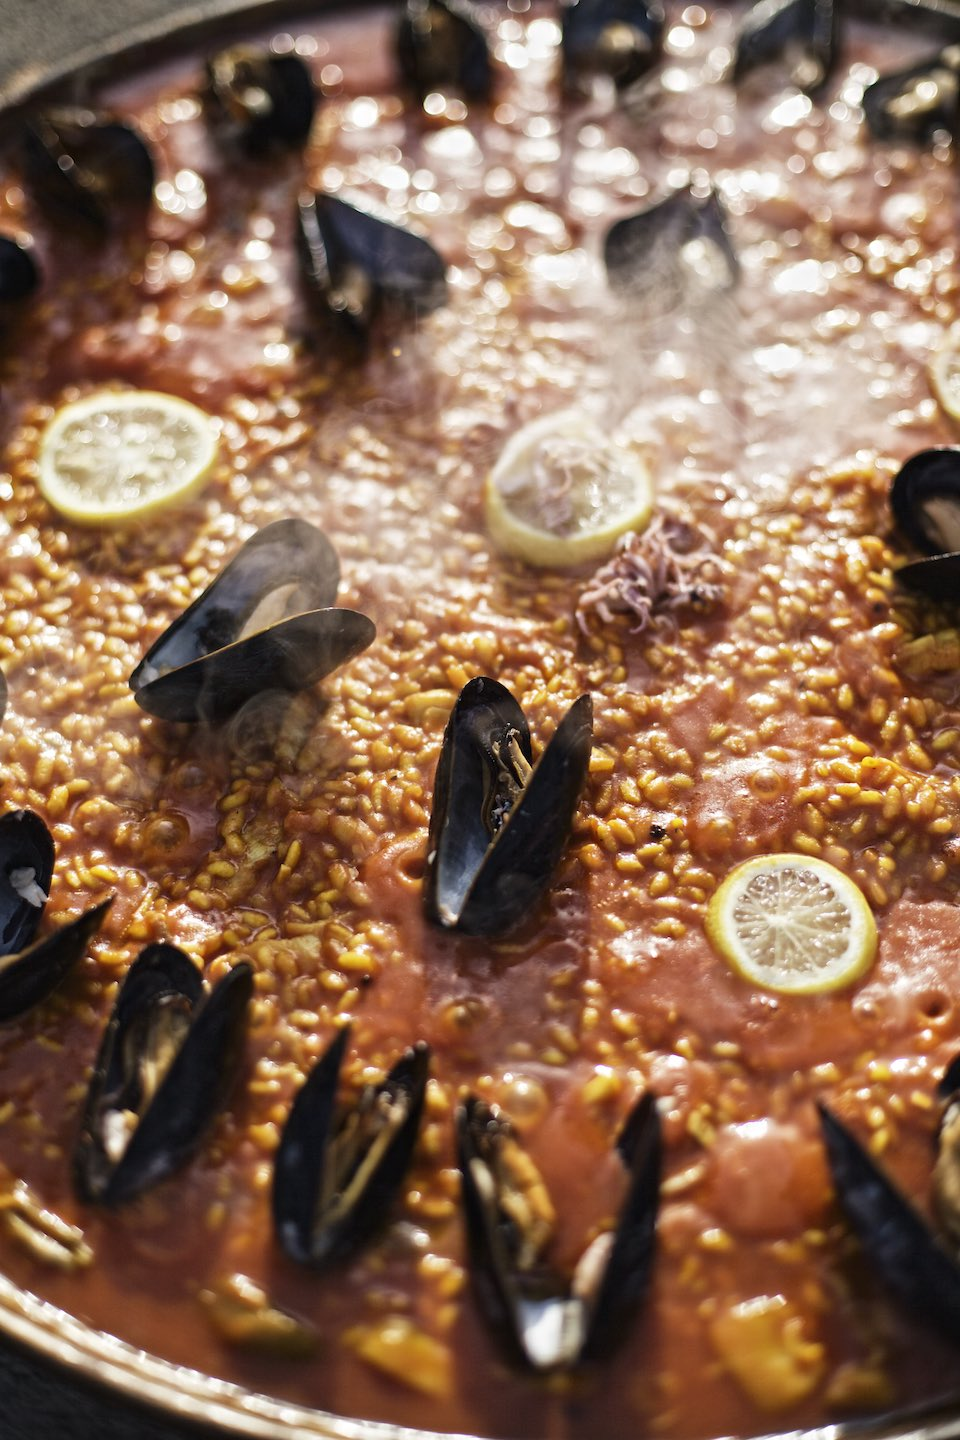 A steaming pan of seafood paella with mussels and lemon.